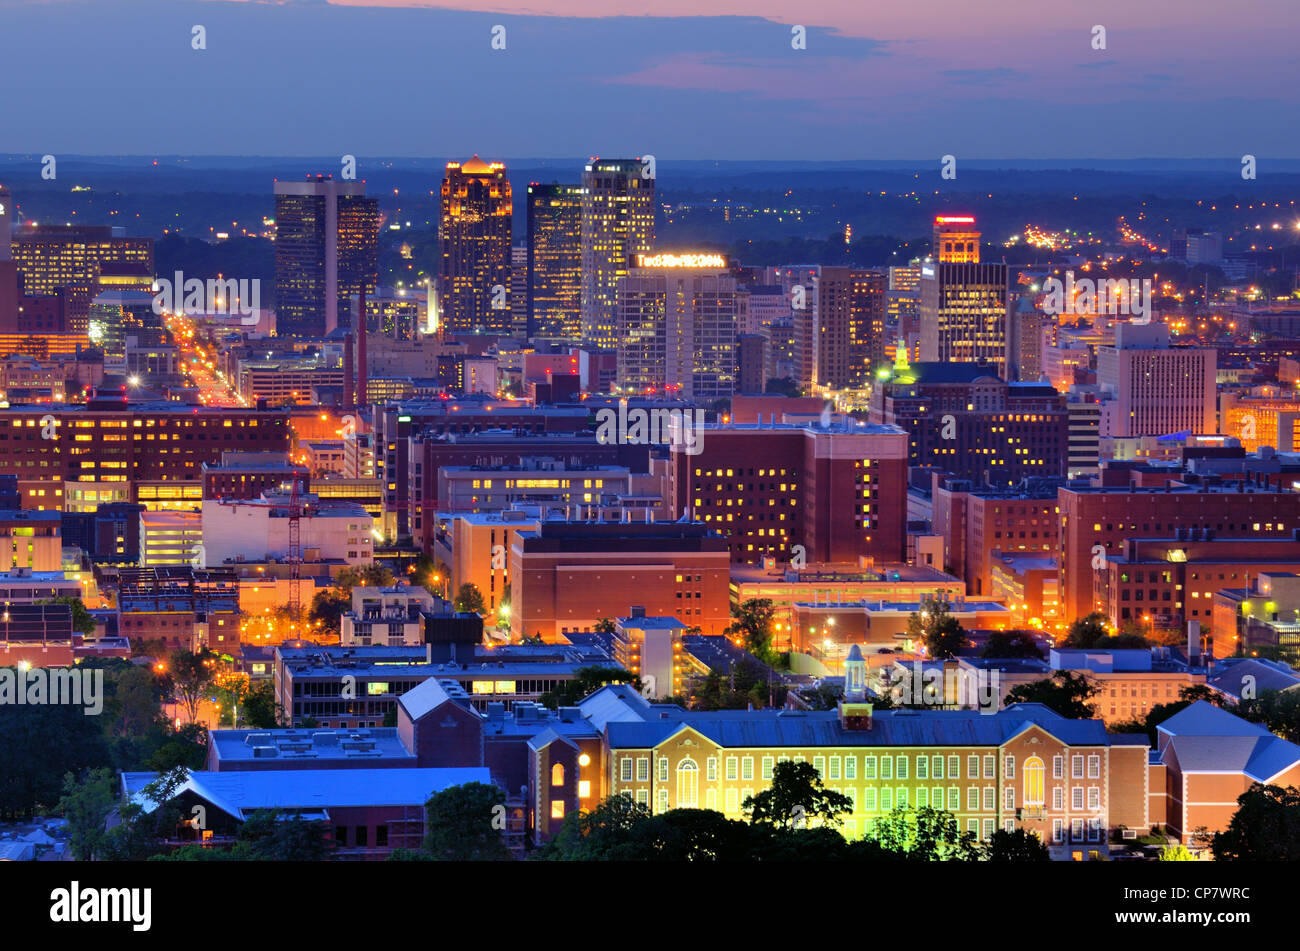 Downtown skyline of Birmingham, Alabama, USA at night. Stock Photo